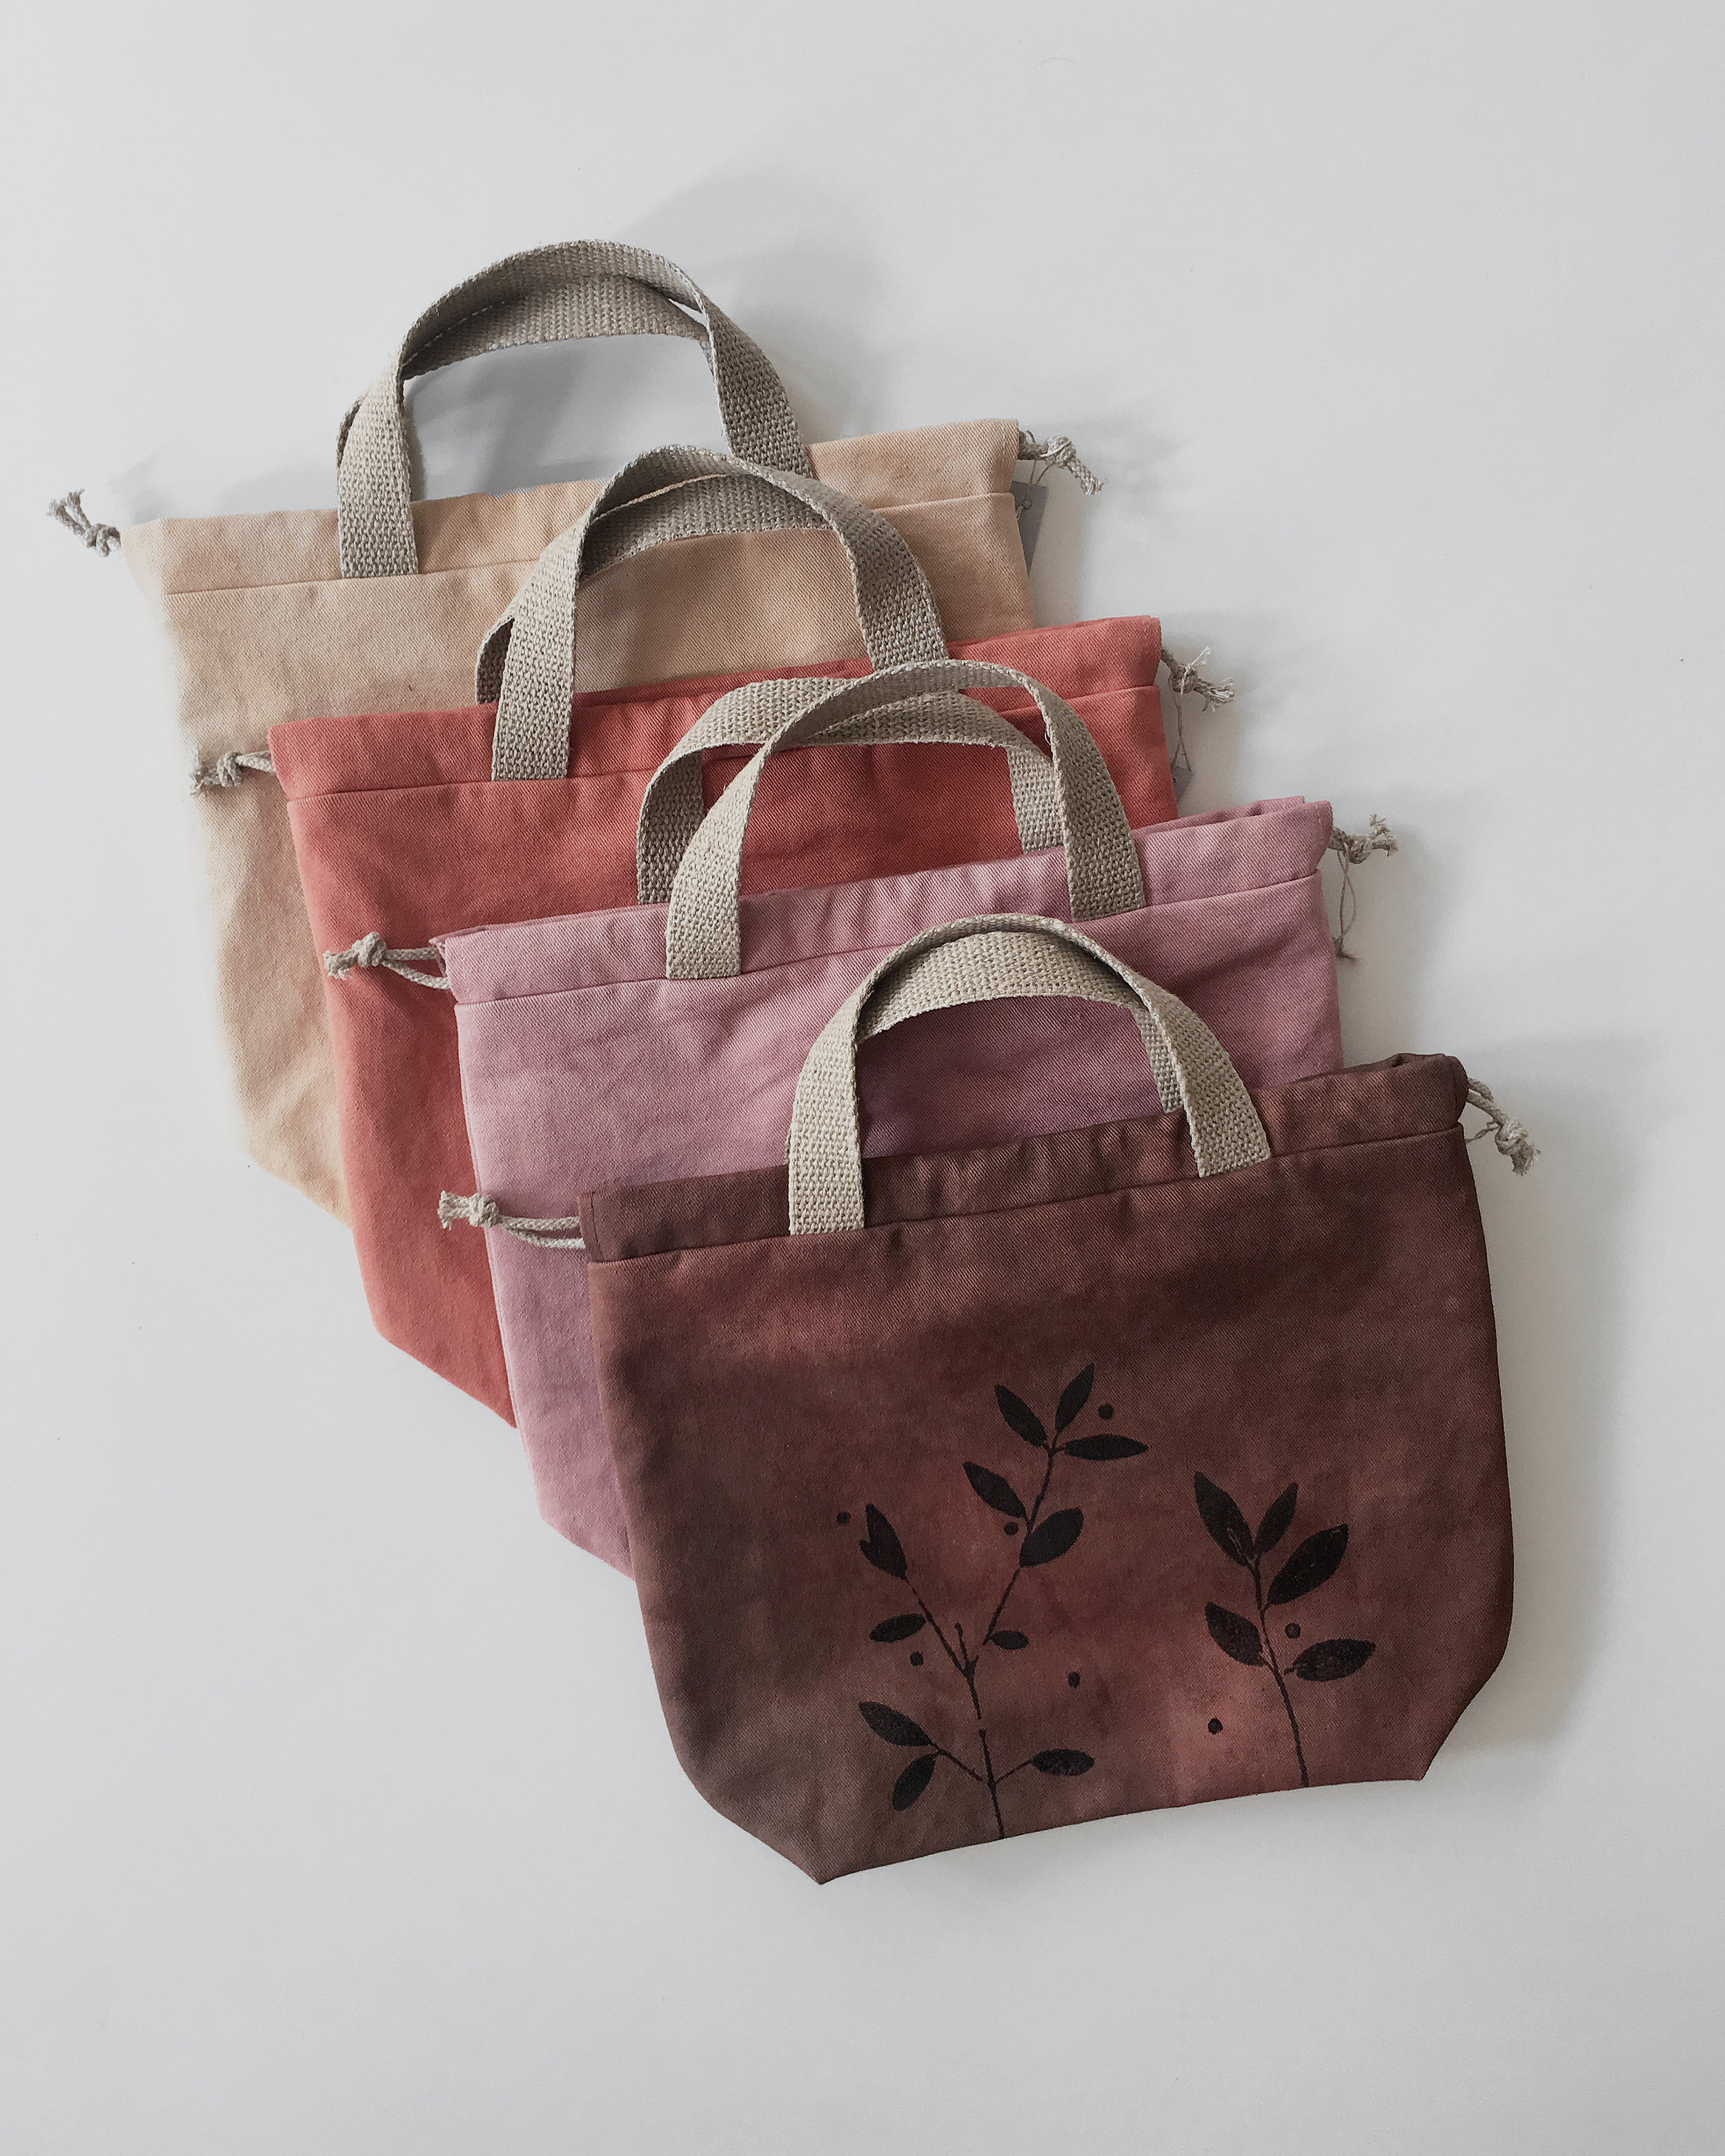 Another shop update is planned for late May - new project bags are coming